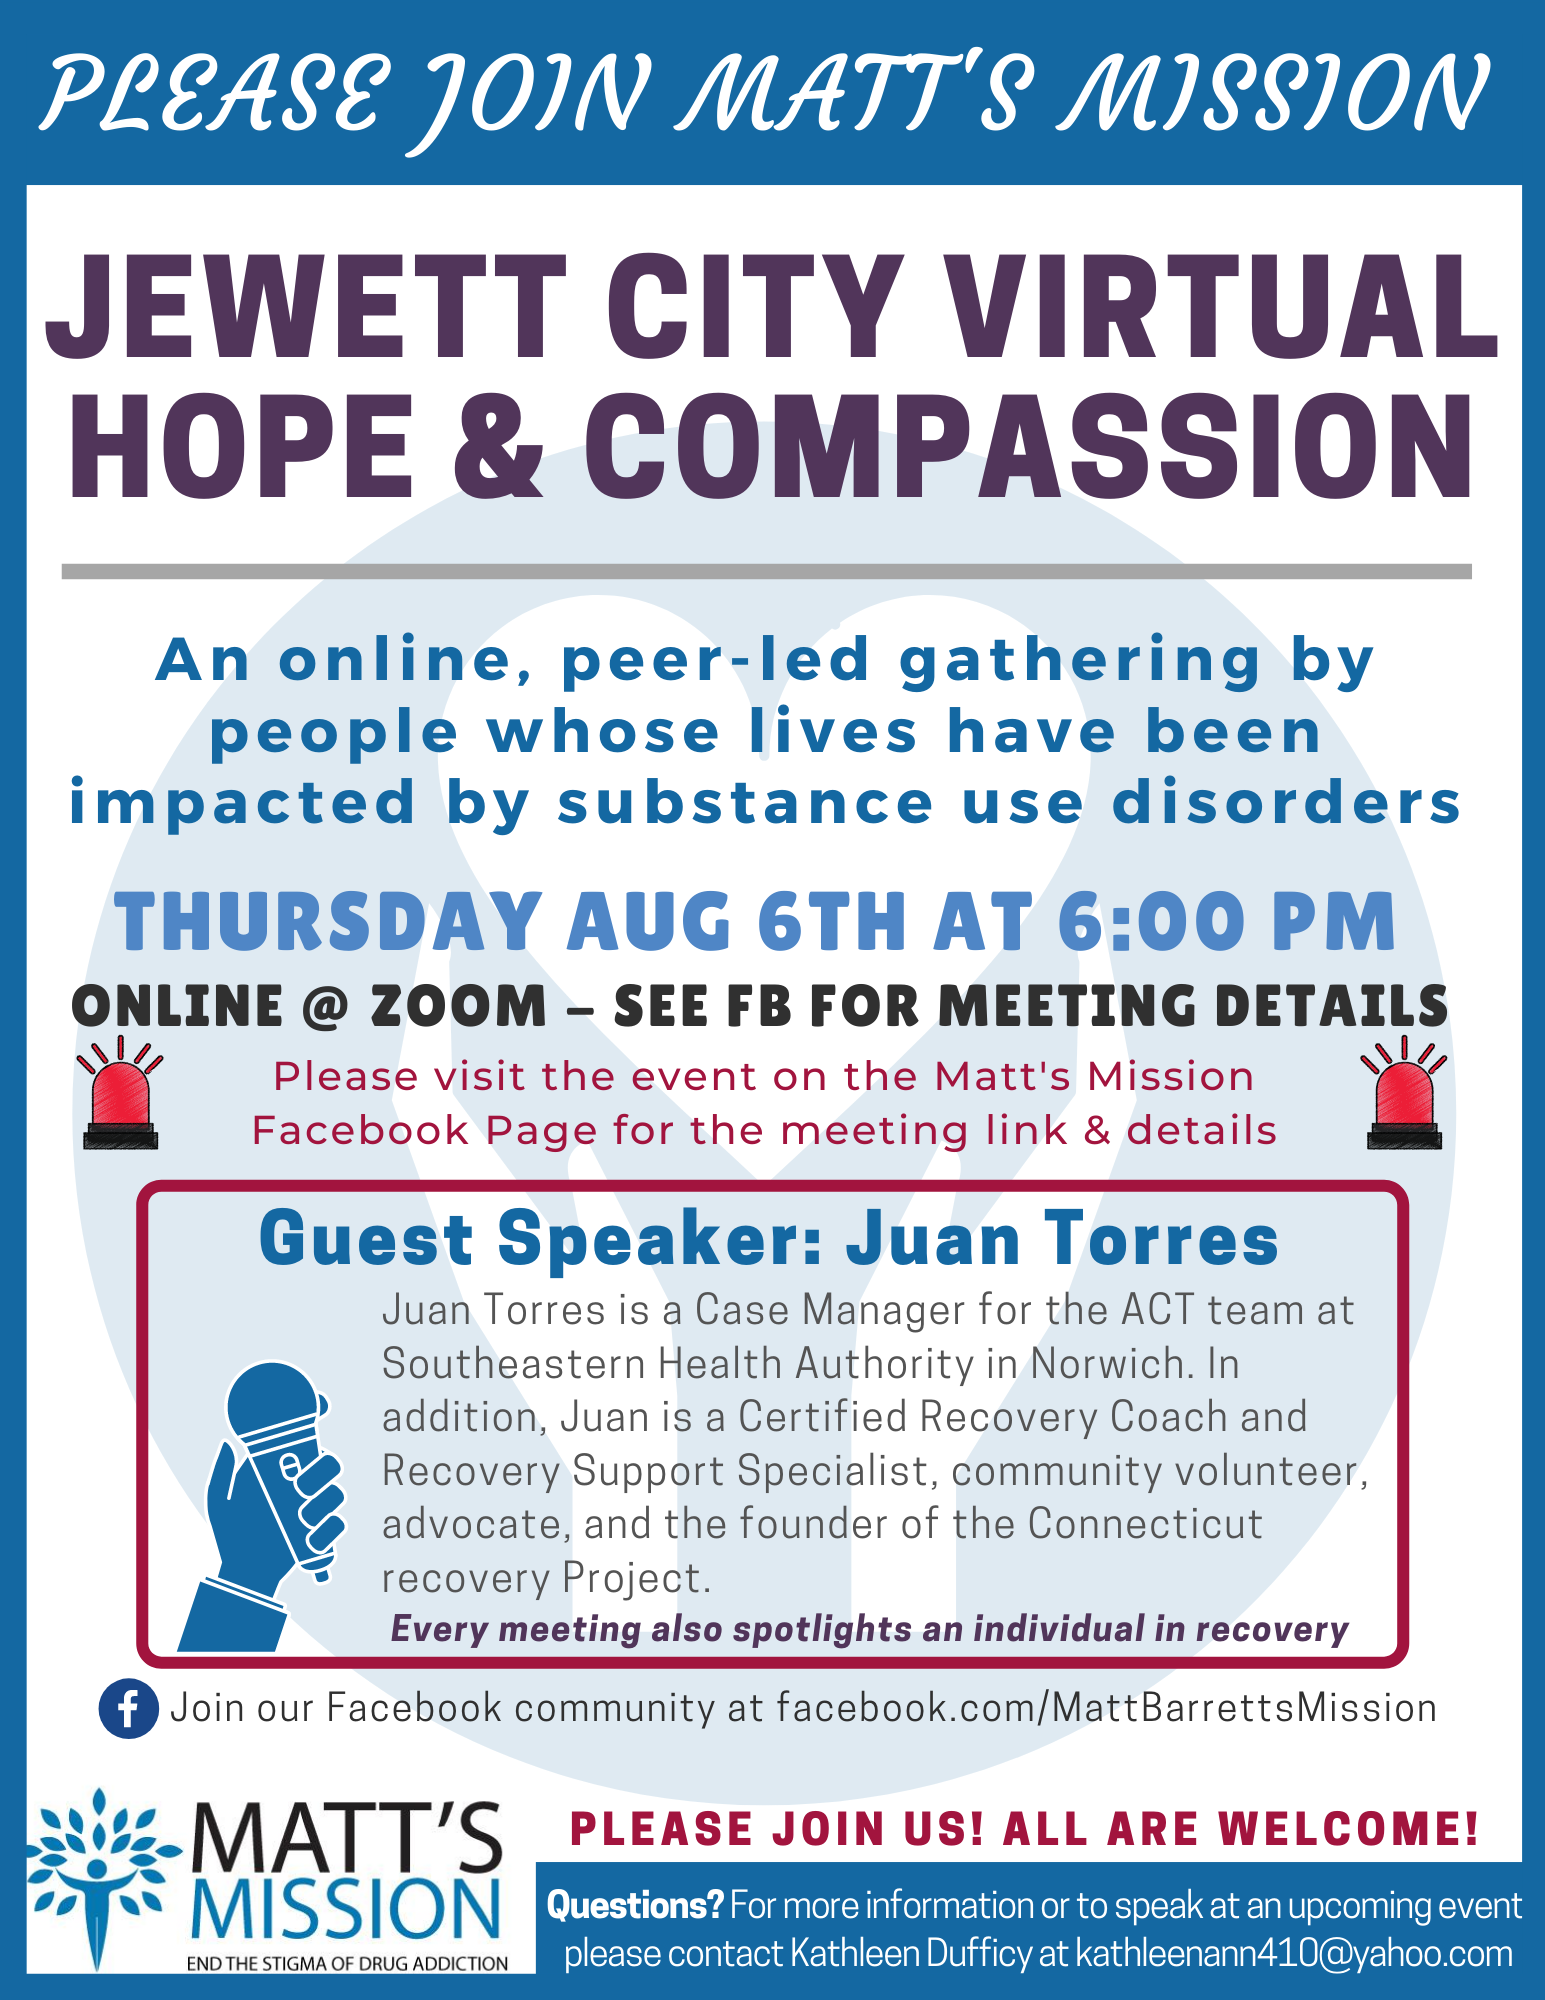 Join us for Jewett City Hope and Compassion on August 6th, 2020.